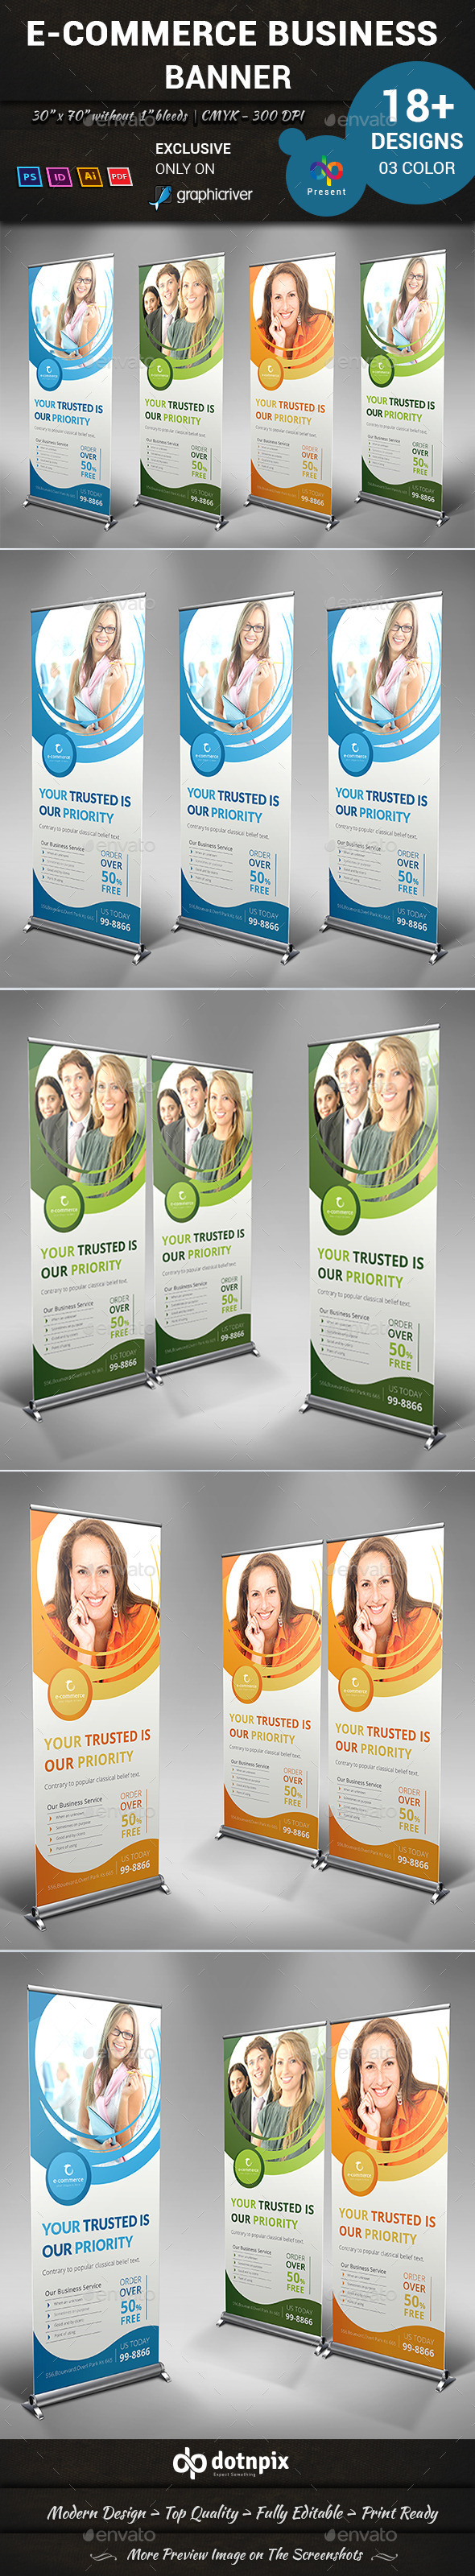 GraphicRiver E-Commerce Business Banner 10487272